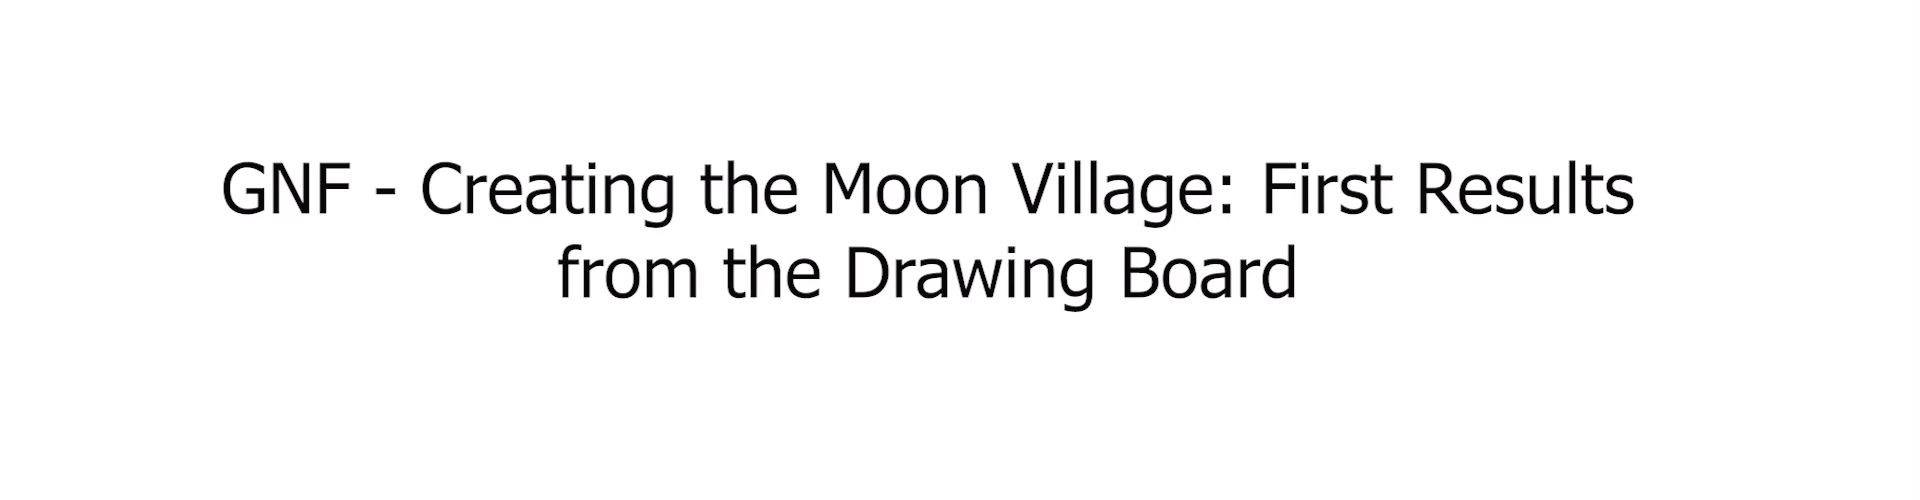 IAC Bremen, Creating the Moon Village: First Results from the Drawing Board